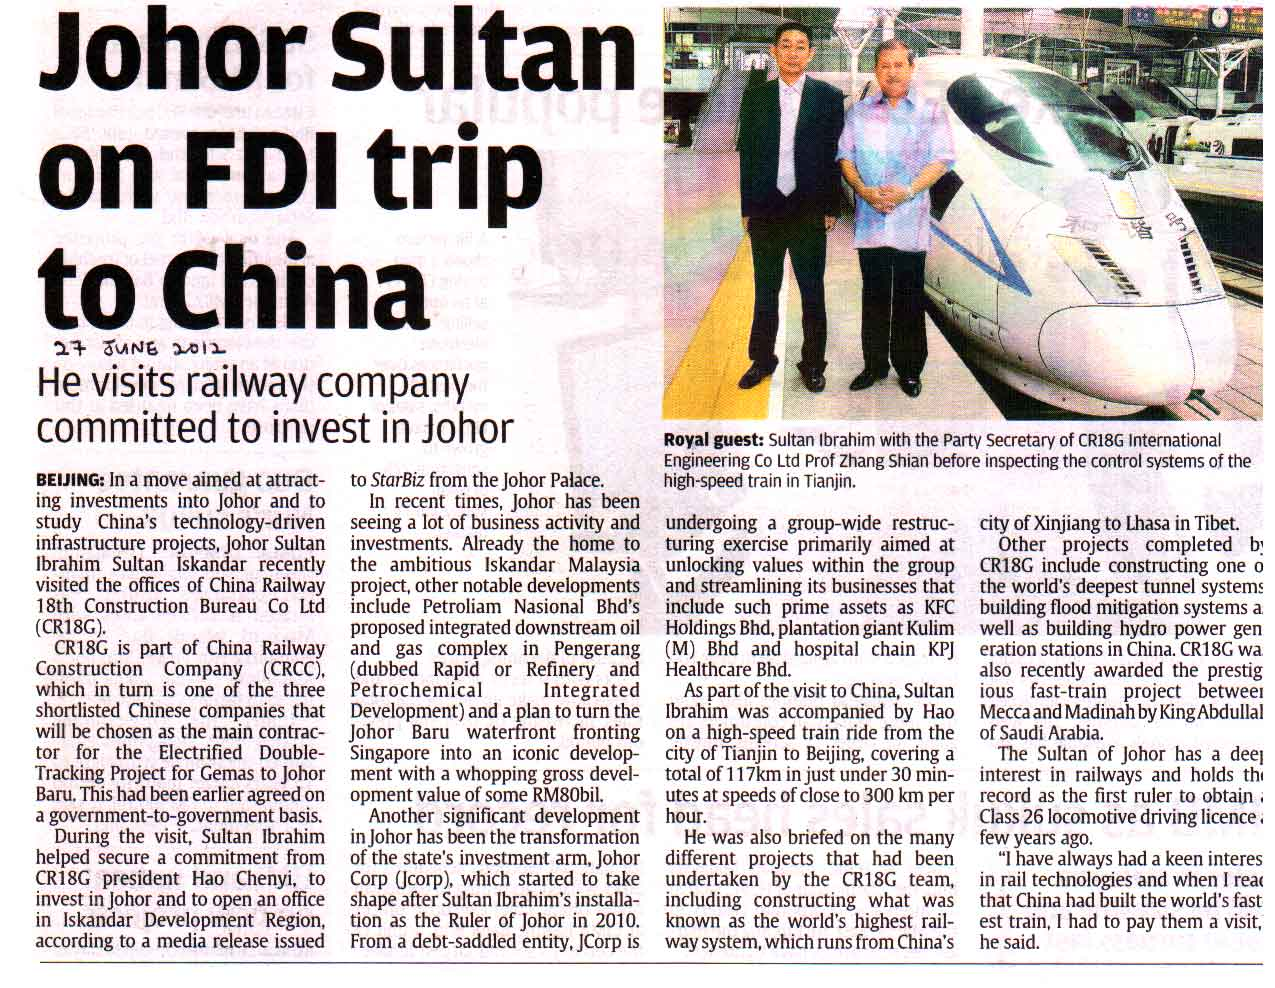 Johor Sultan on FDI trip to China